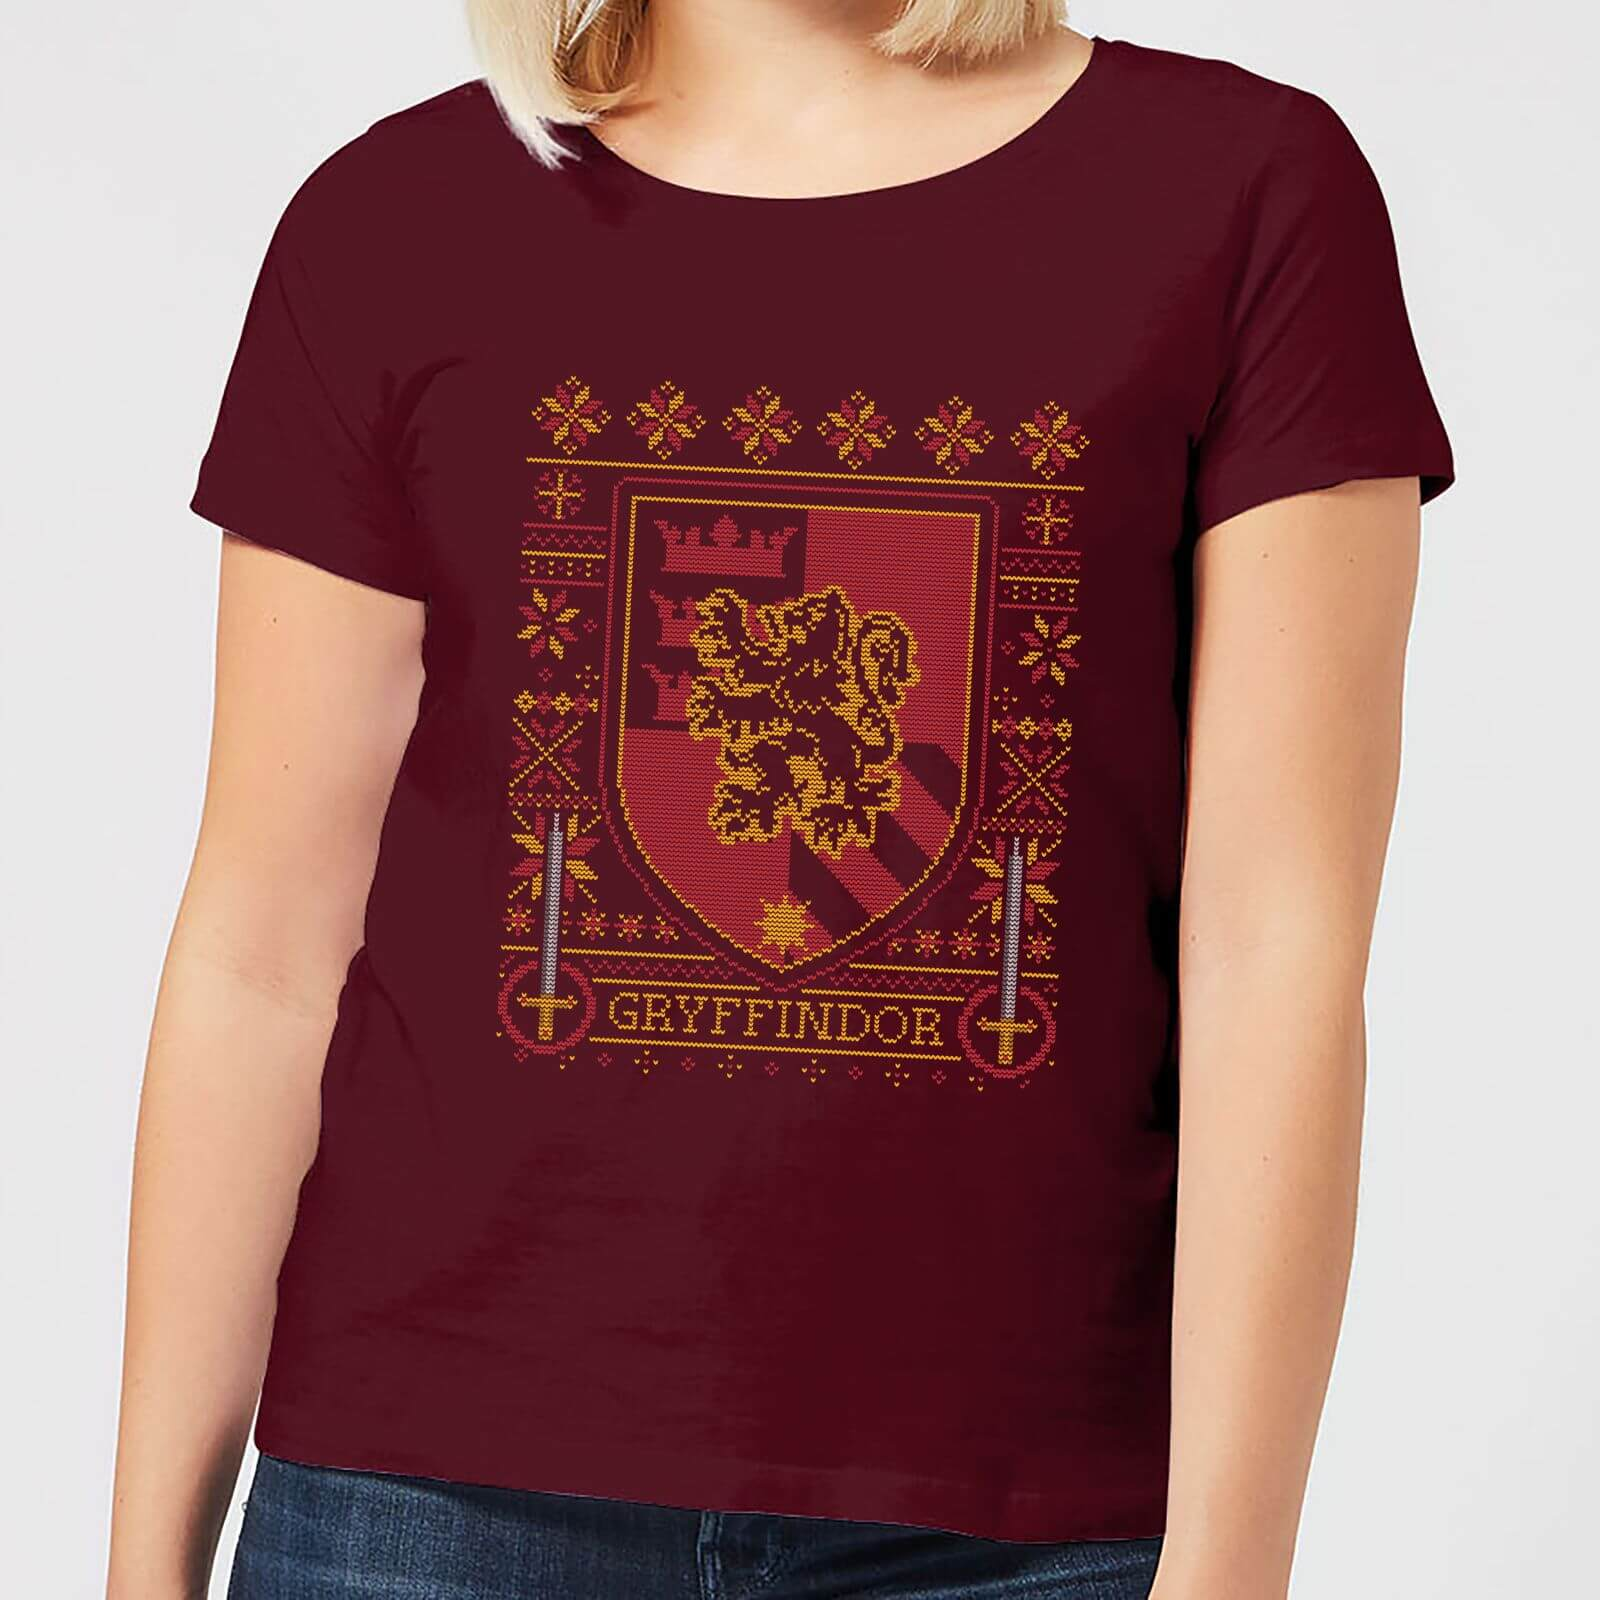 893150b49923c5 Harry Potter Gryffindor Crest Women's Christmas T-Shirt - Burgundy Clothing  | Zavvi